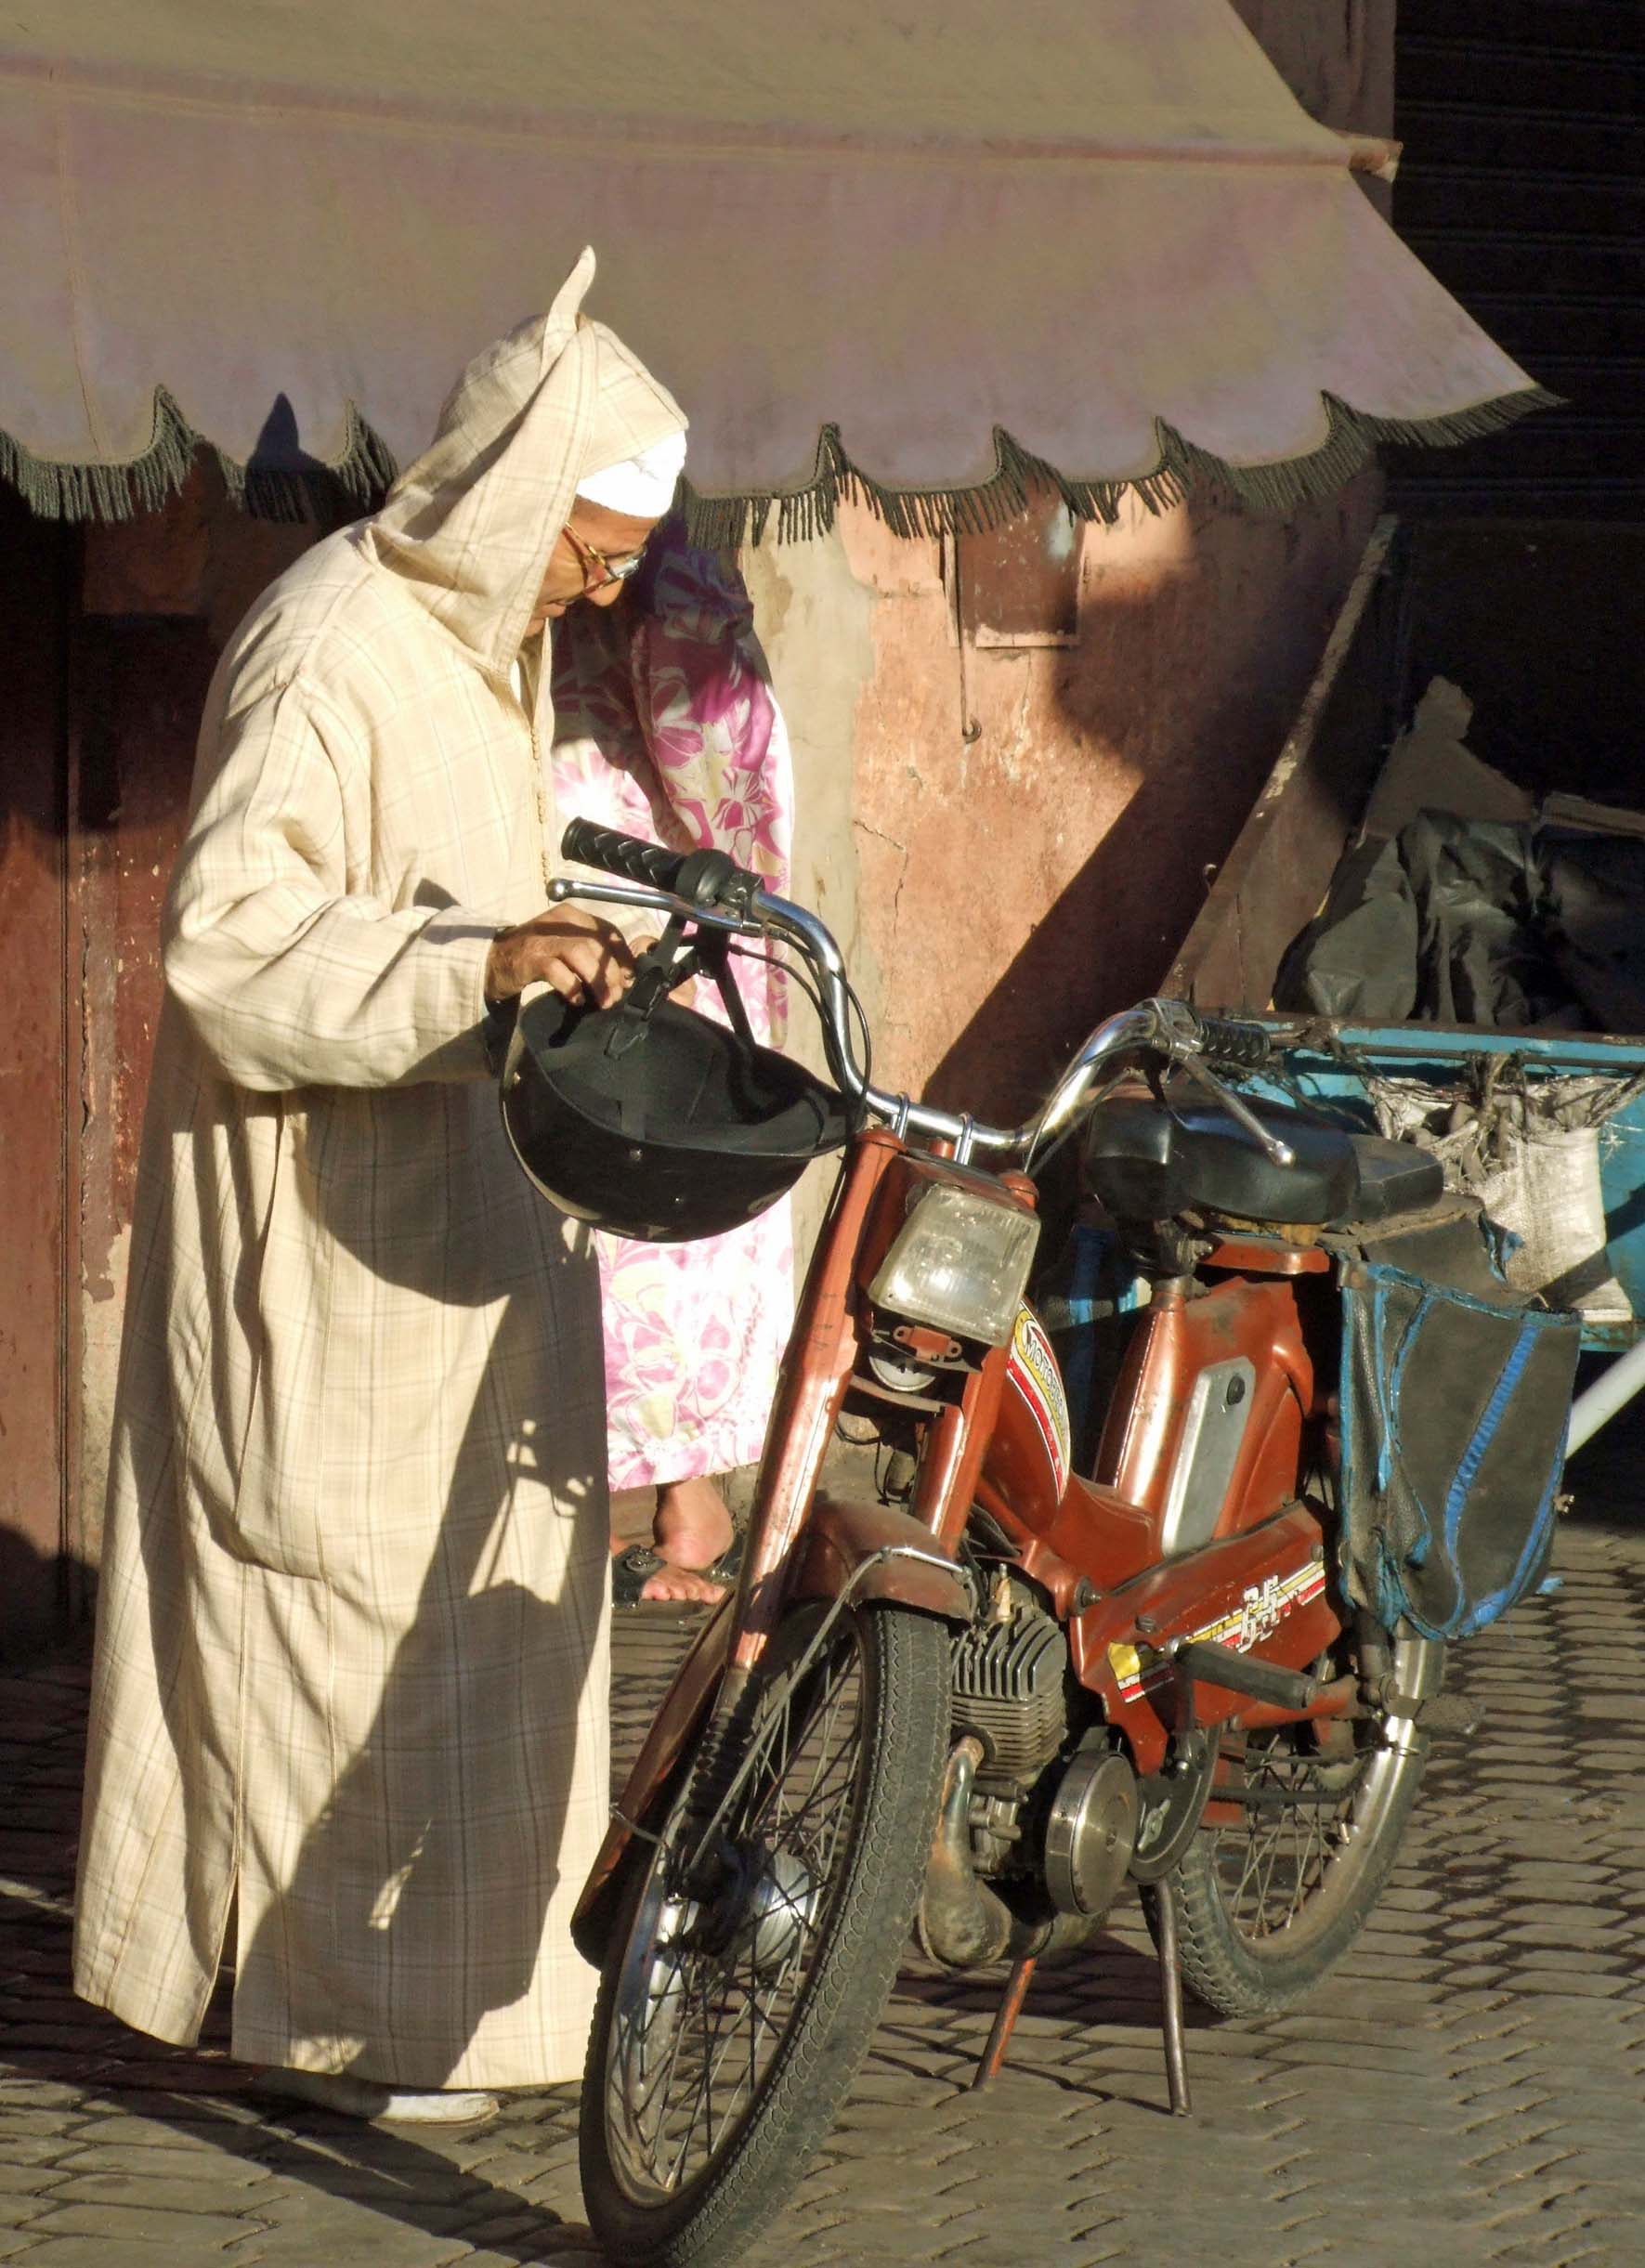 Man in traditional Arab robe with bicycle